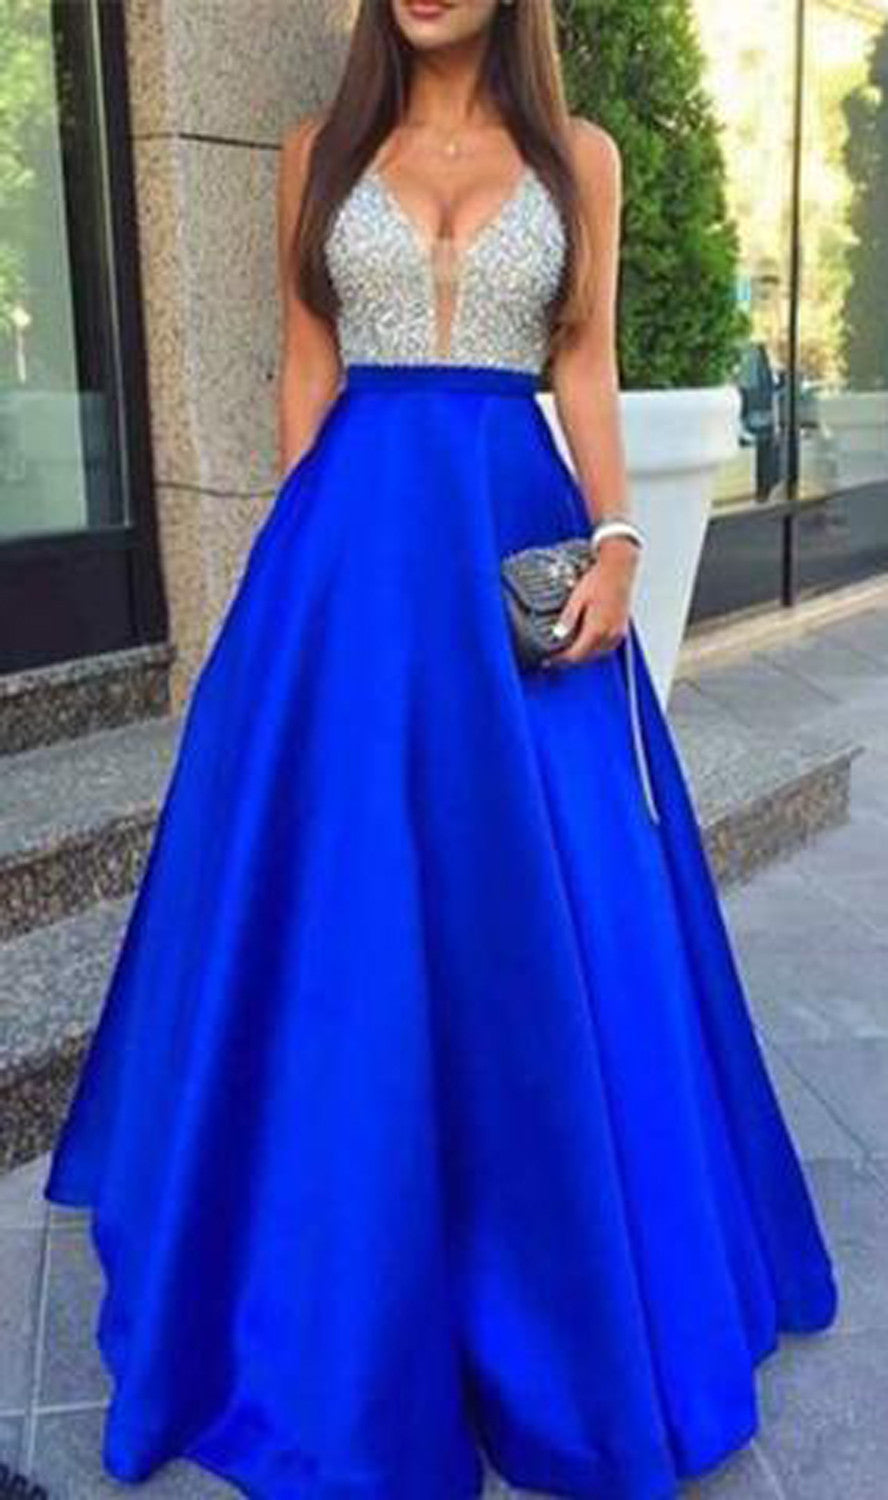 Sparkly Glitter Prom Dress Outfit Ideas Long Blue Two Piece Aline - MyBodiArt.com